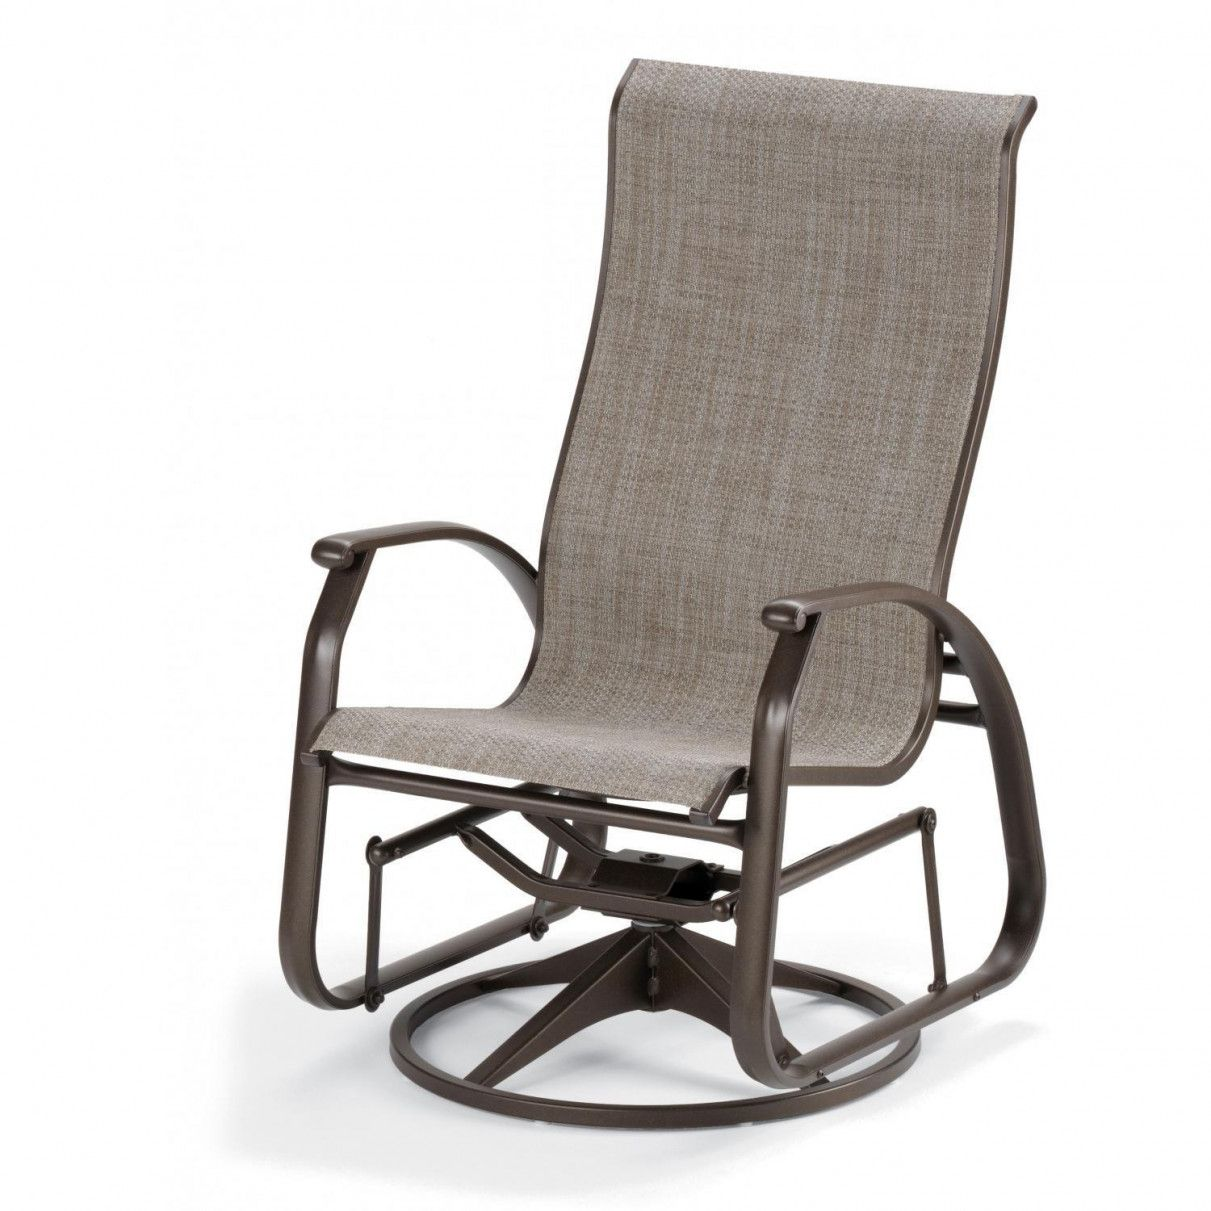 Outdoor Glider Chair Canada   Modern Home Office Furniture Check More At  Http://